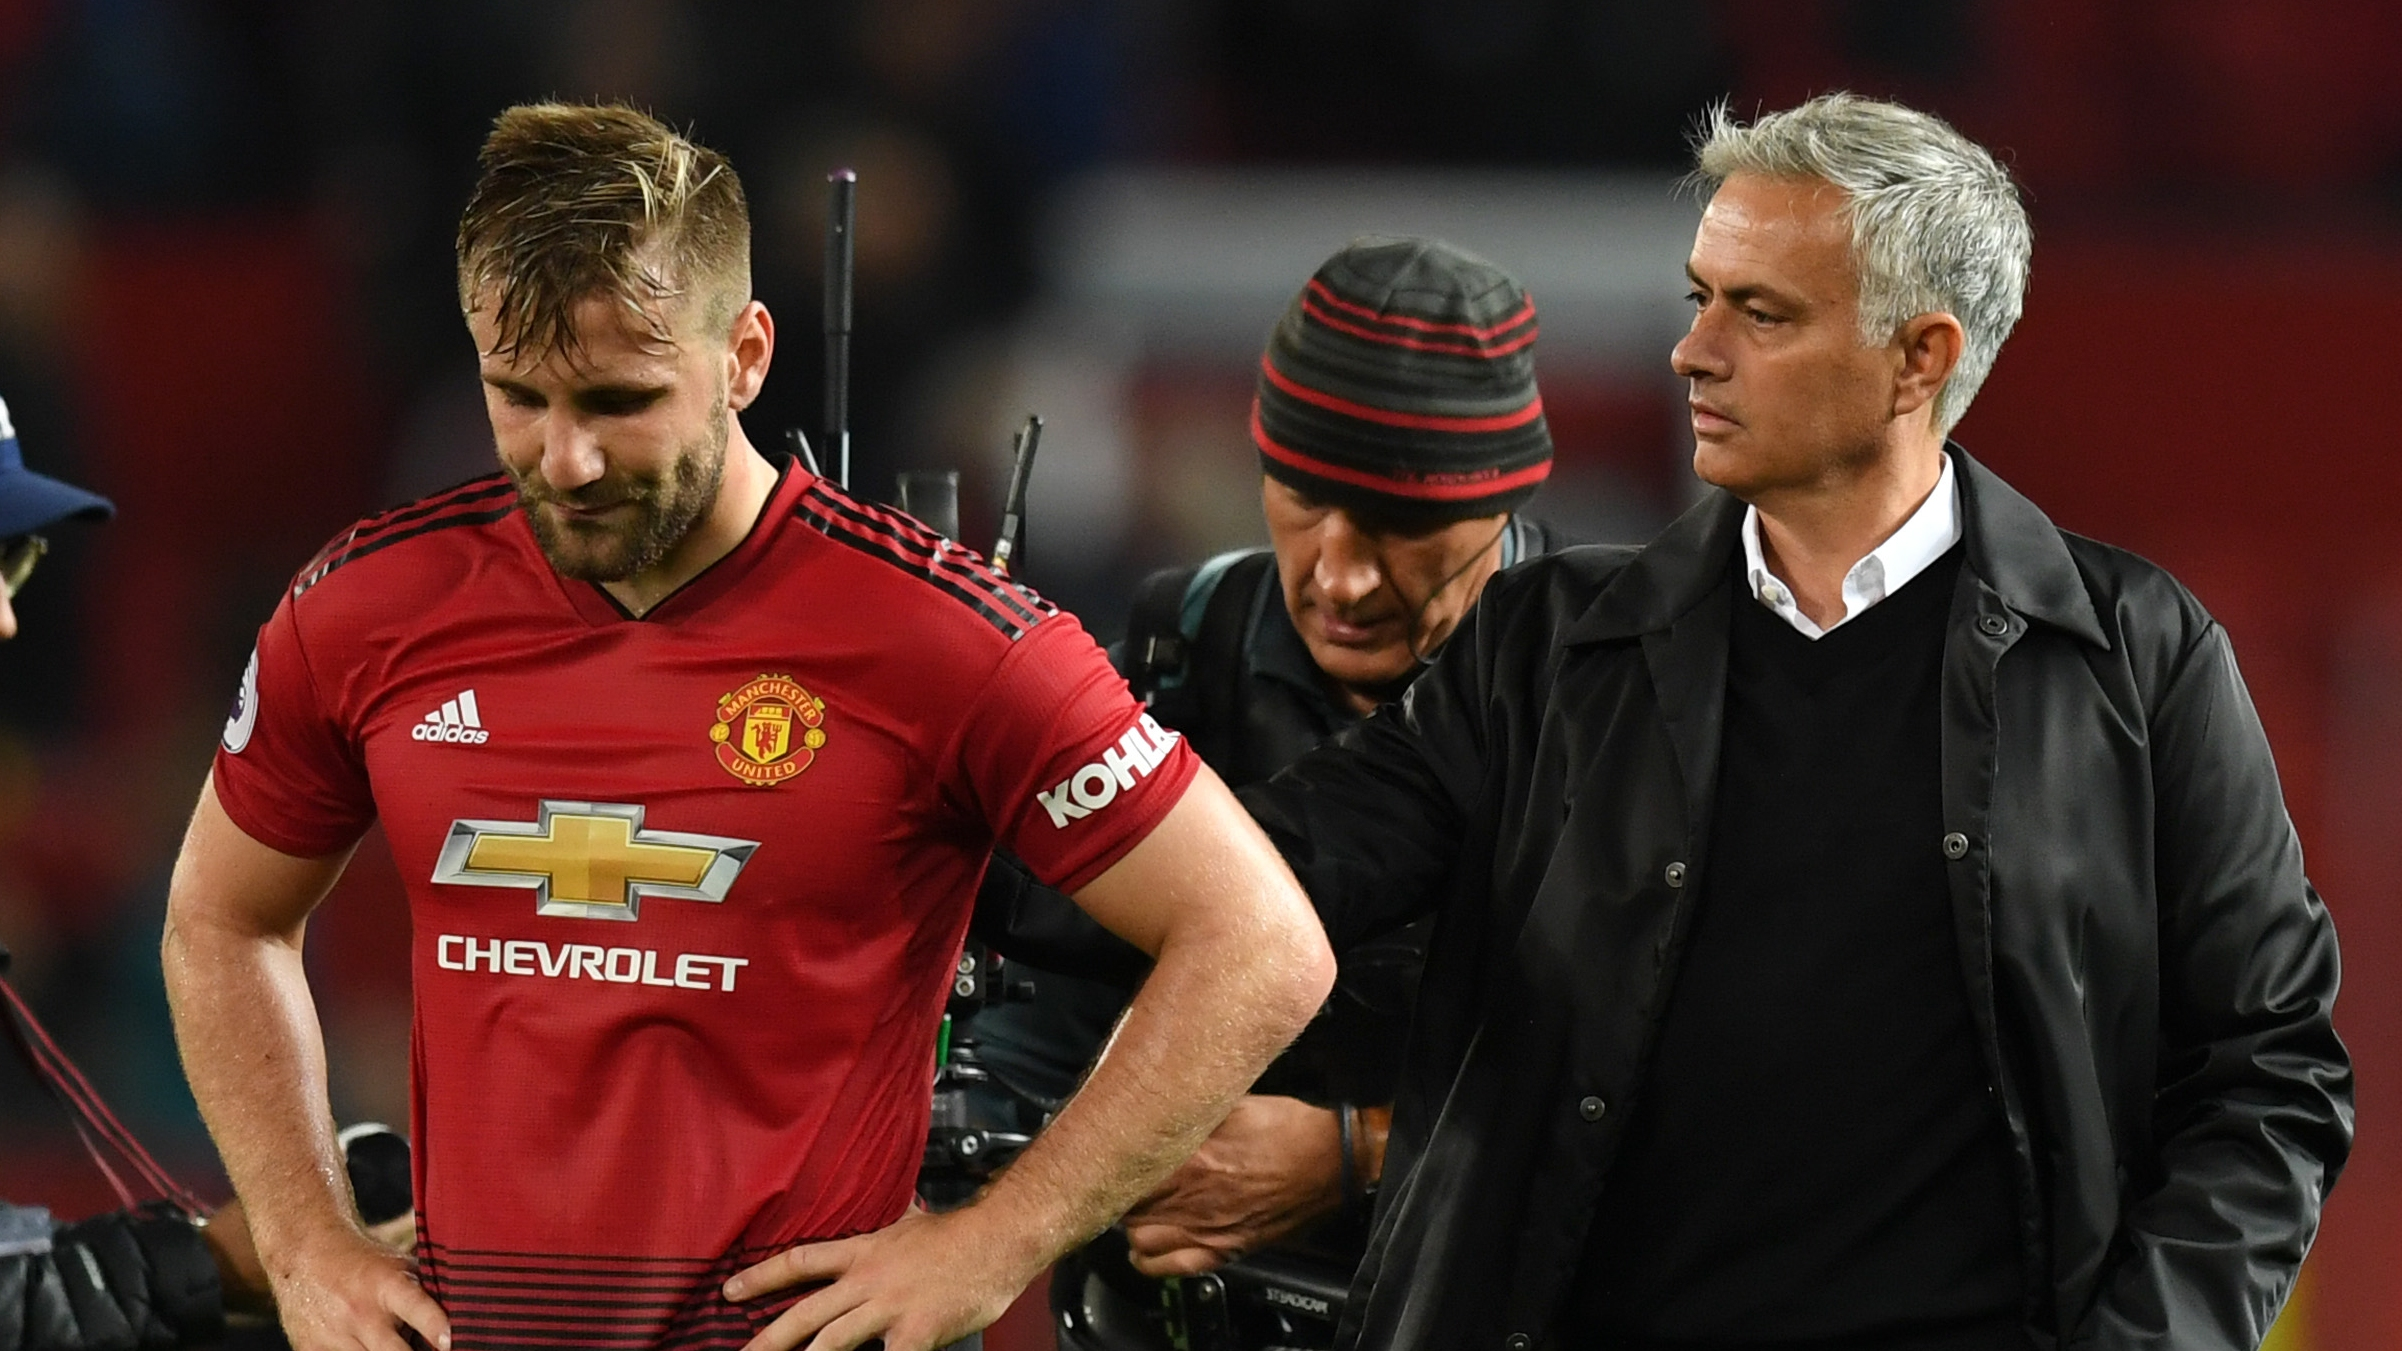 Man Utd's weak link: Why Mourinho was right about Luke Shaw